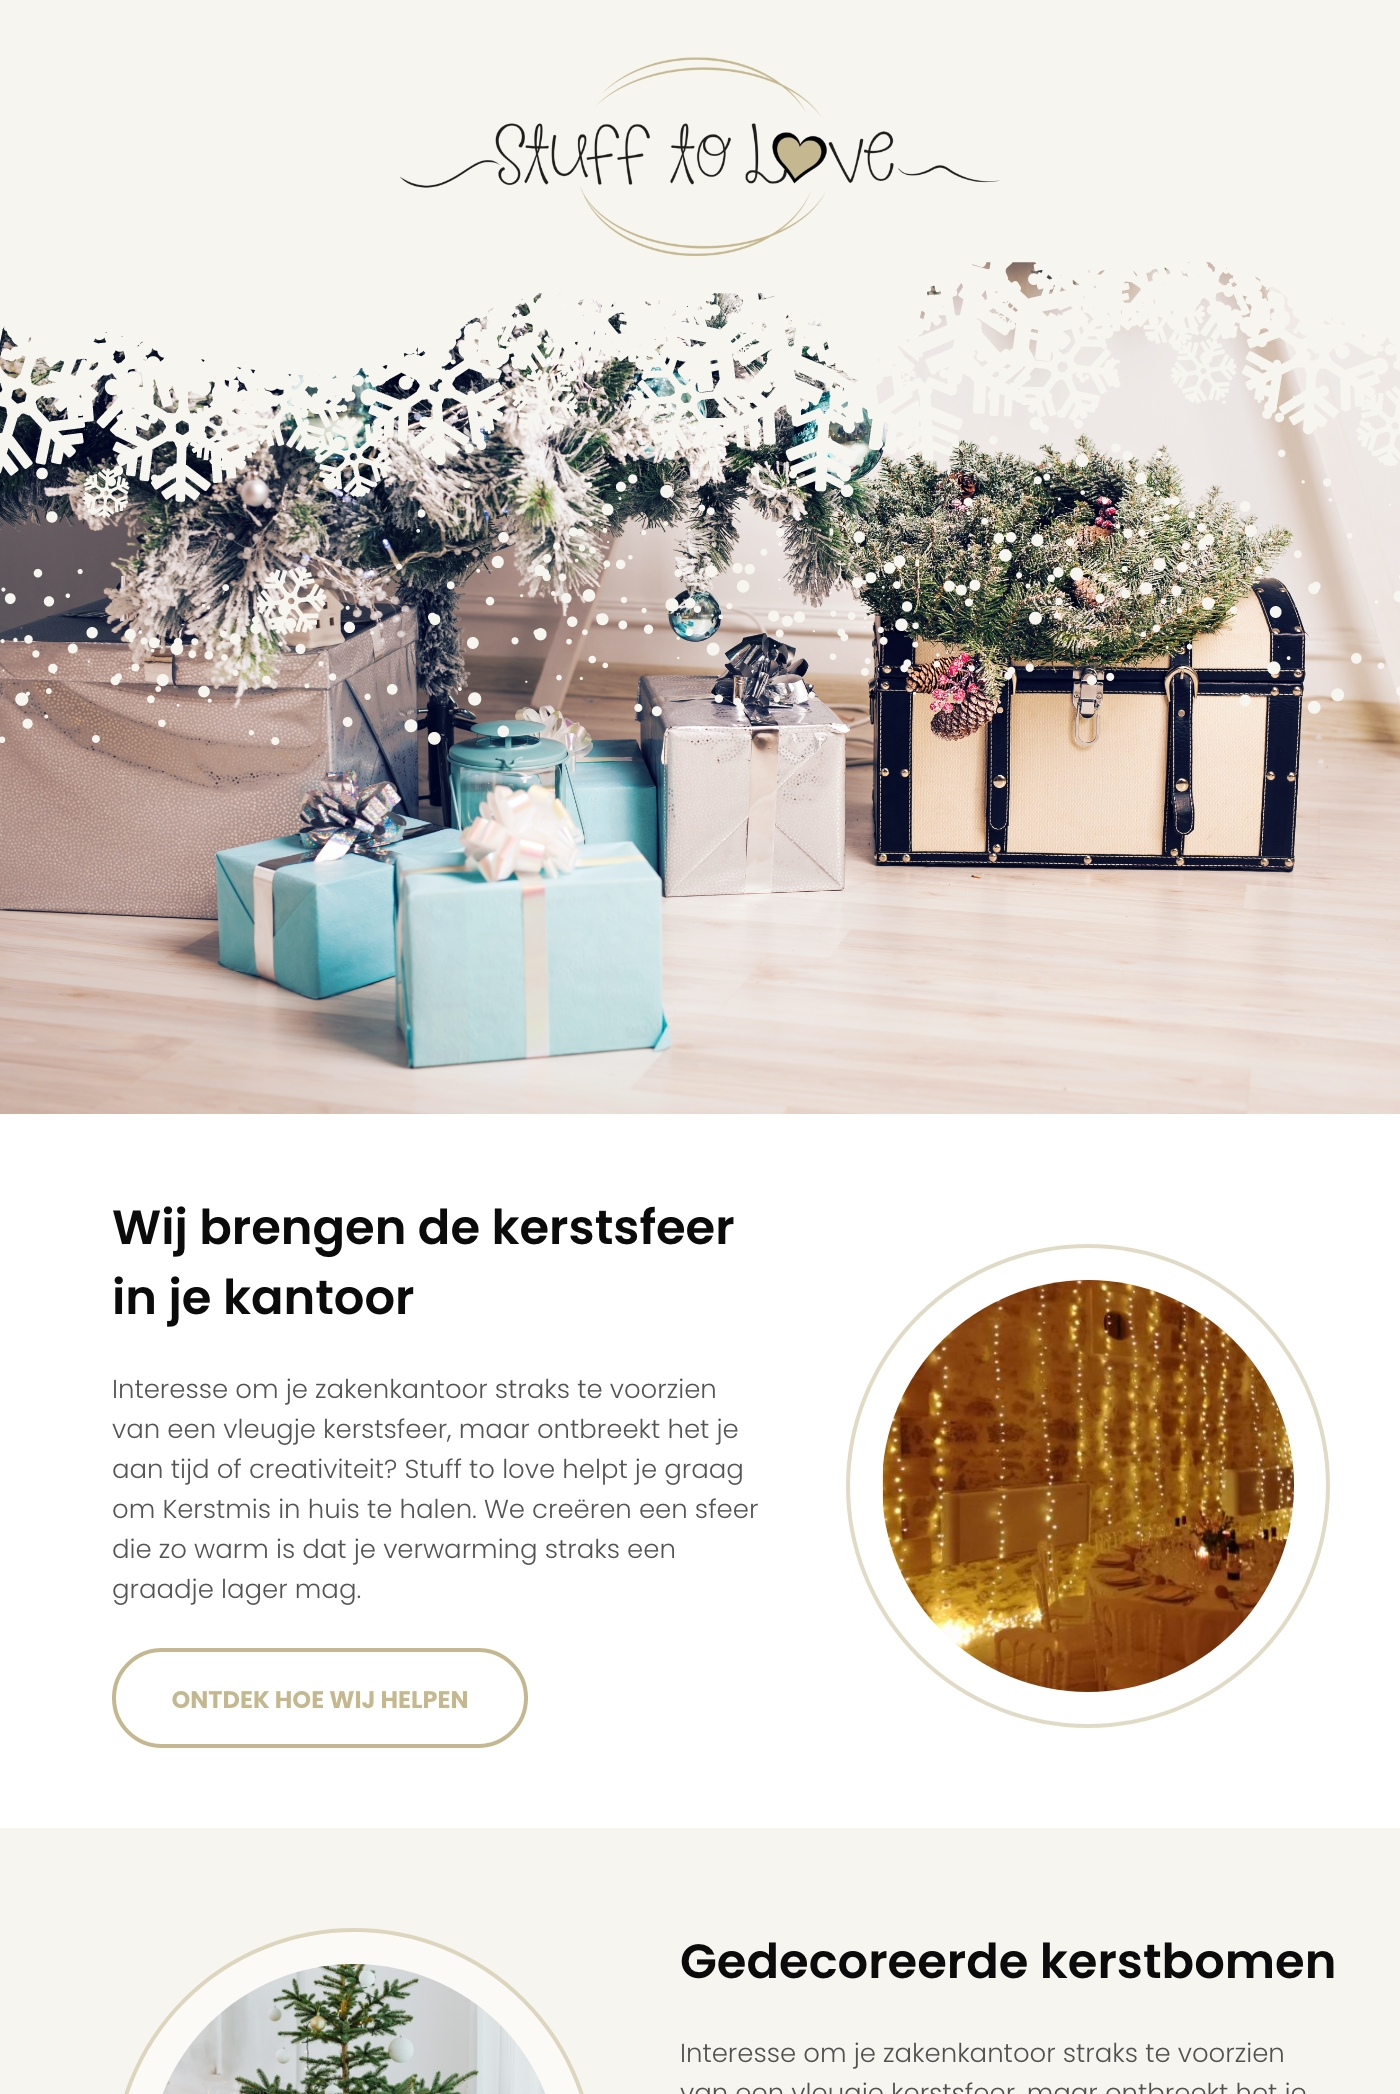 Mailing campagne voor Stuff to love